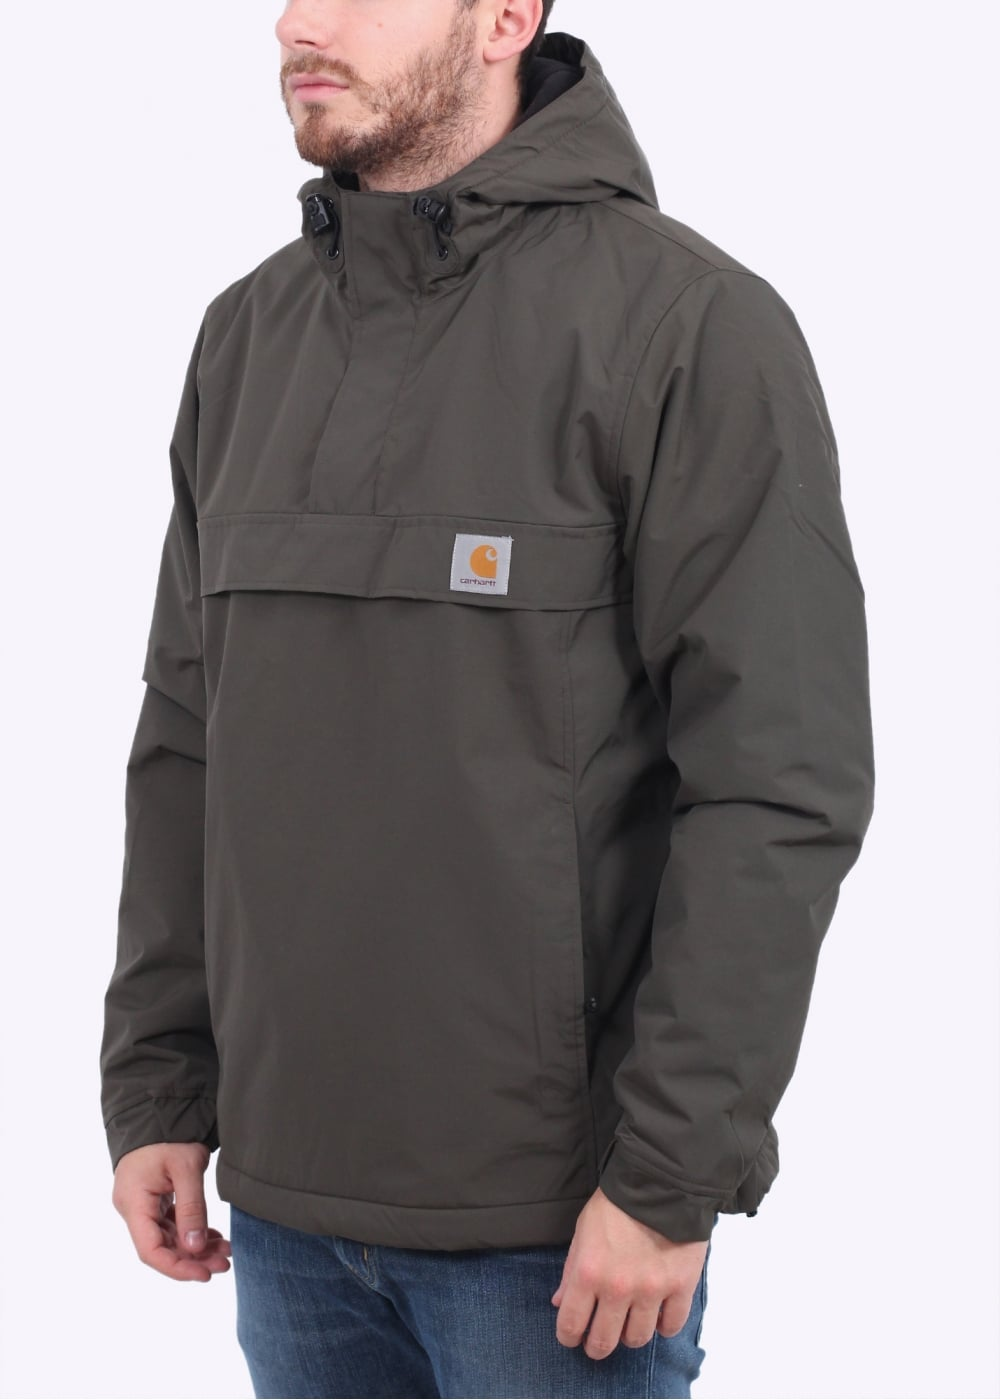 carhartt nimbus pullover jacket cypress carhartt from triads uk. Black Bedroom Furniture Sets. Home Design Ideas